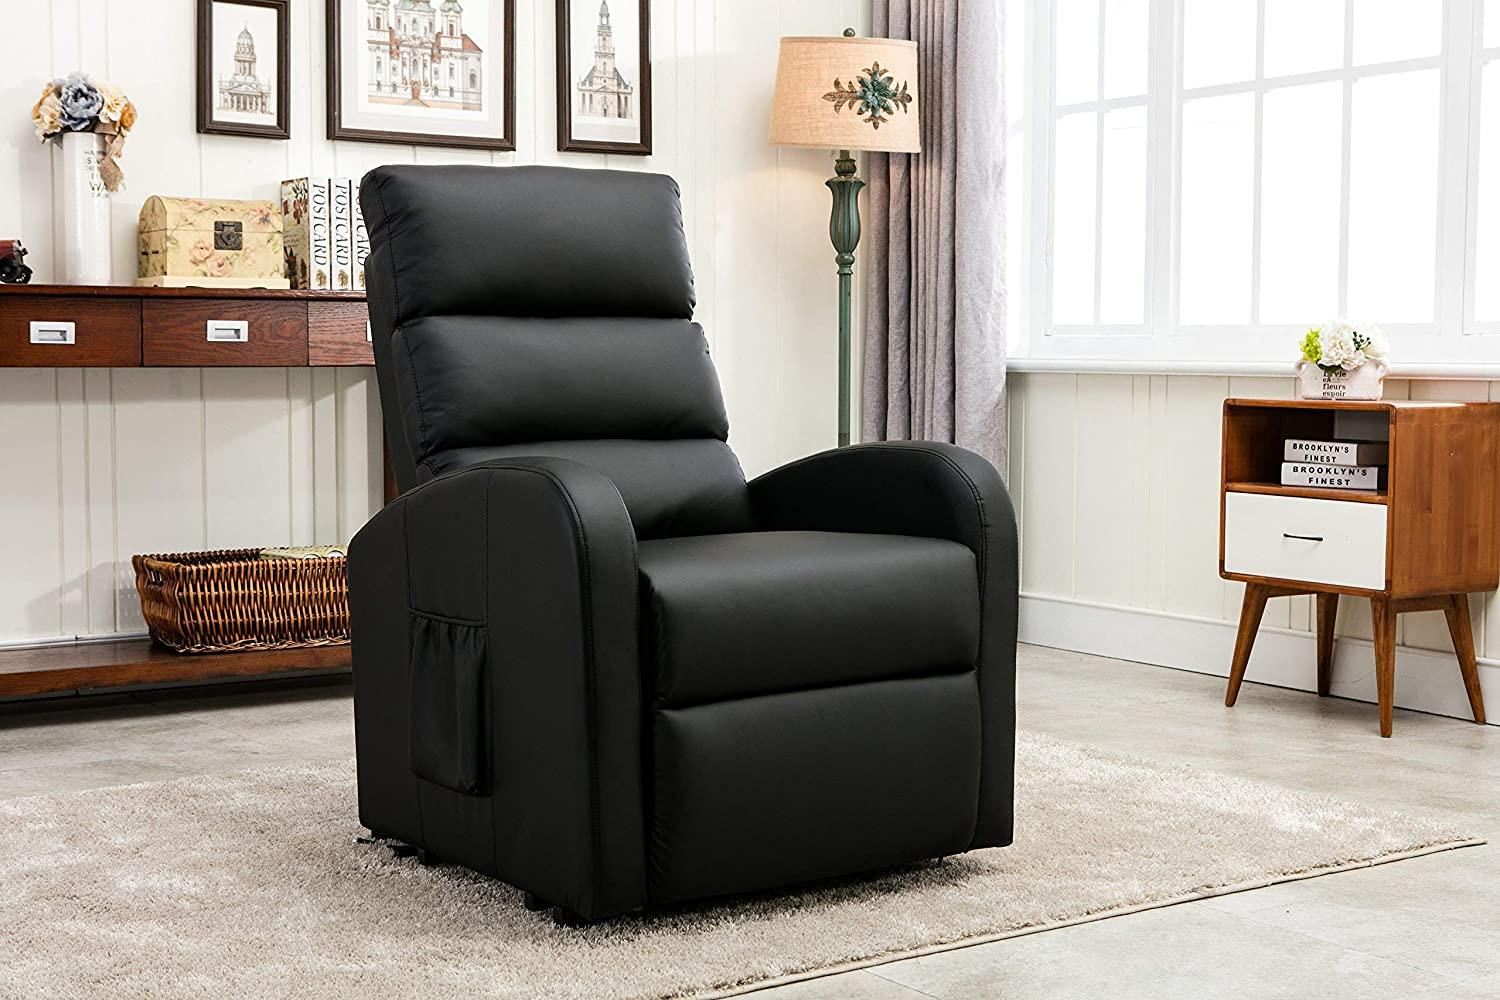 black Plush leather recliner